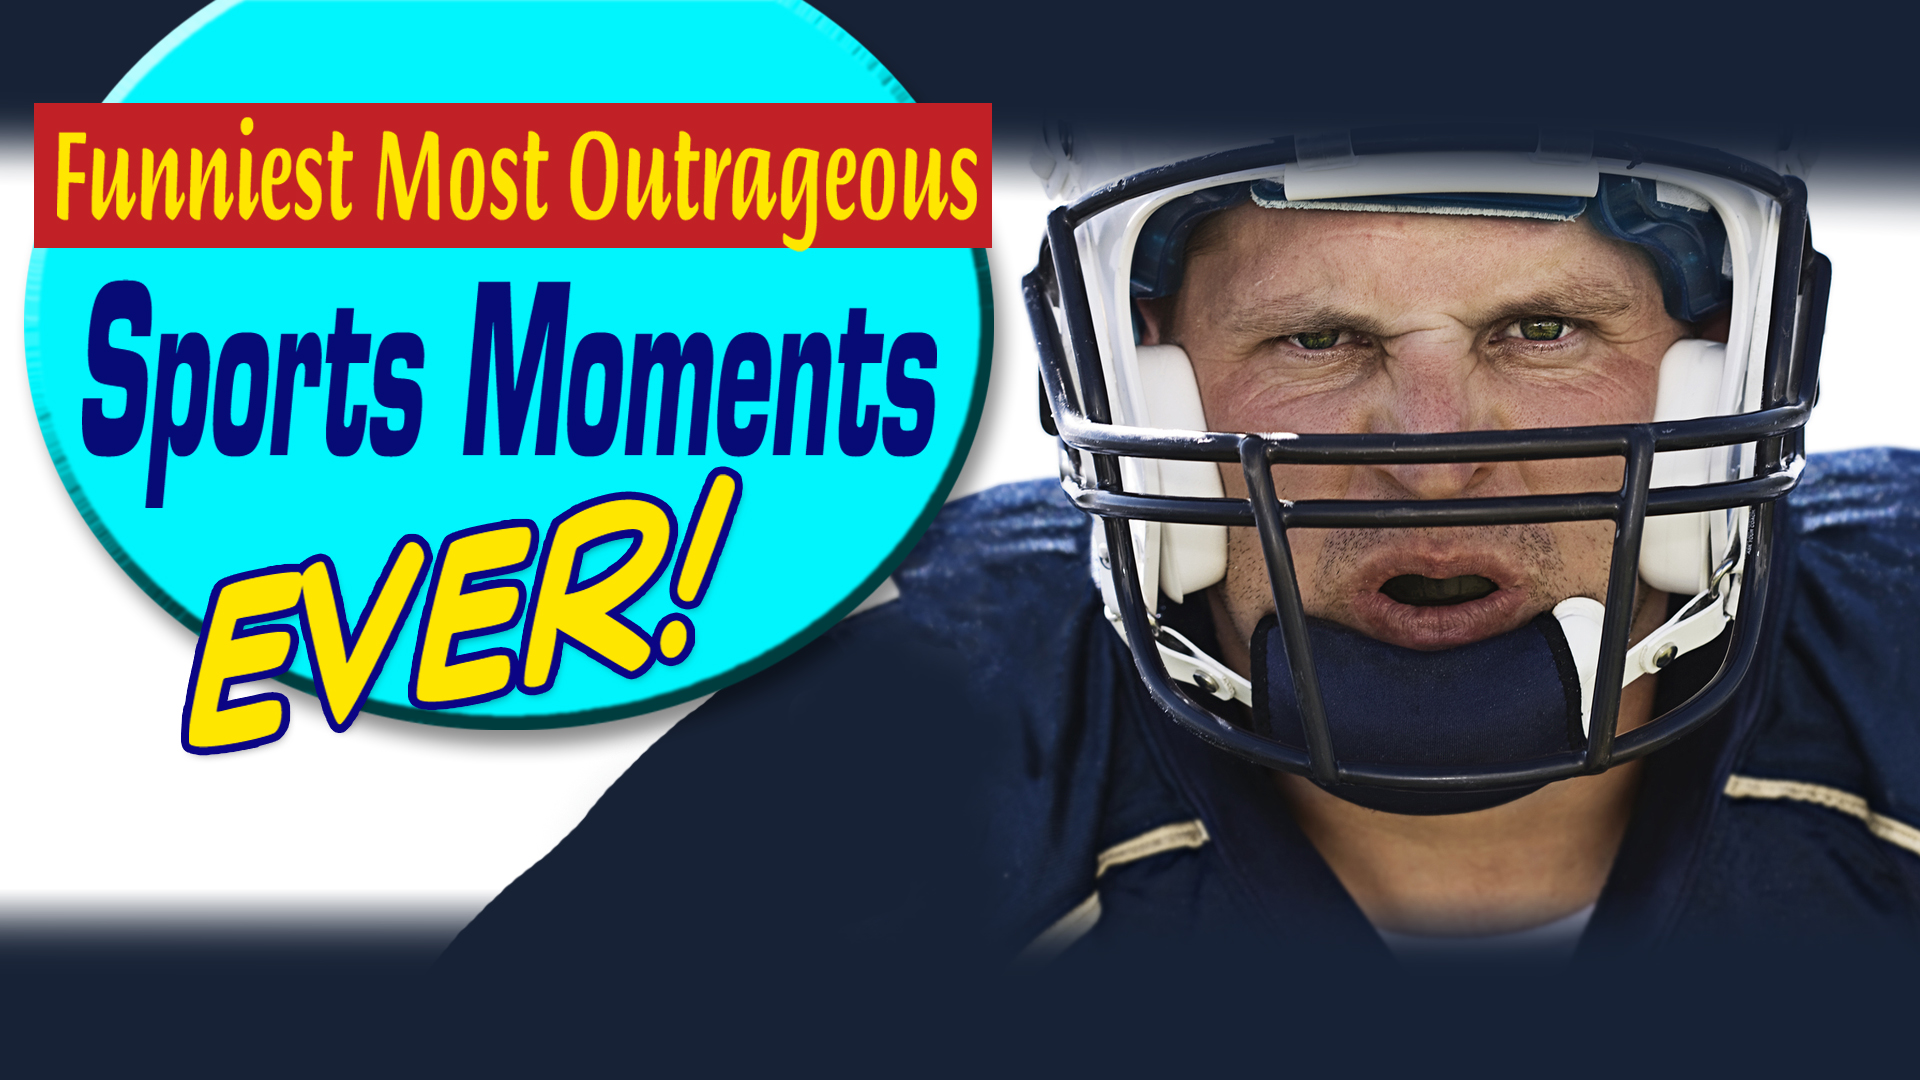 The Funniest Most Outrageous Sports Moments Ever -